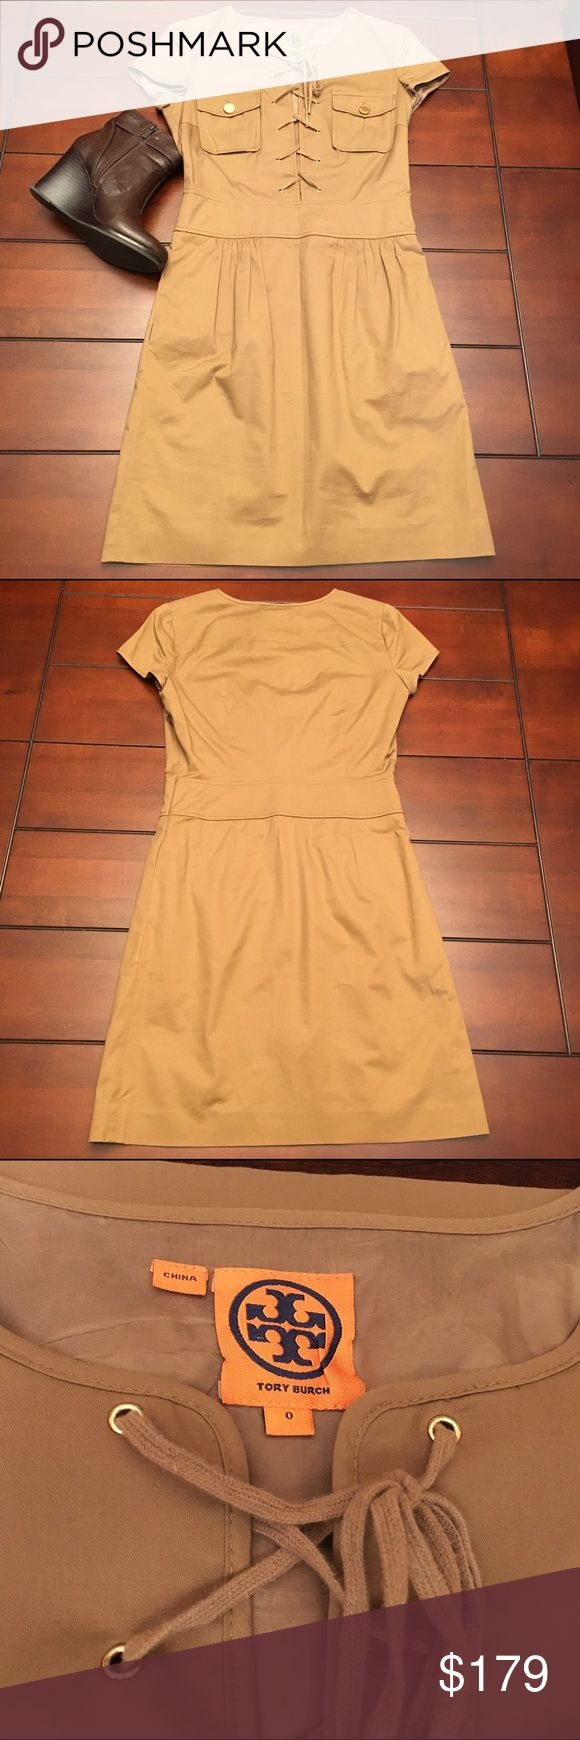 Tory Burch Cap Sleeve Tan Dress, Size 0 Tory Burch Cap Sleeve Tan Dress, Size 0  Super cute and in fab like-new condition! Wear this with a blazer for fall. 🍂🍁Measures 35 inches from shoulder to hem. Bust is 33 inches. Tory Burch Dresses